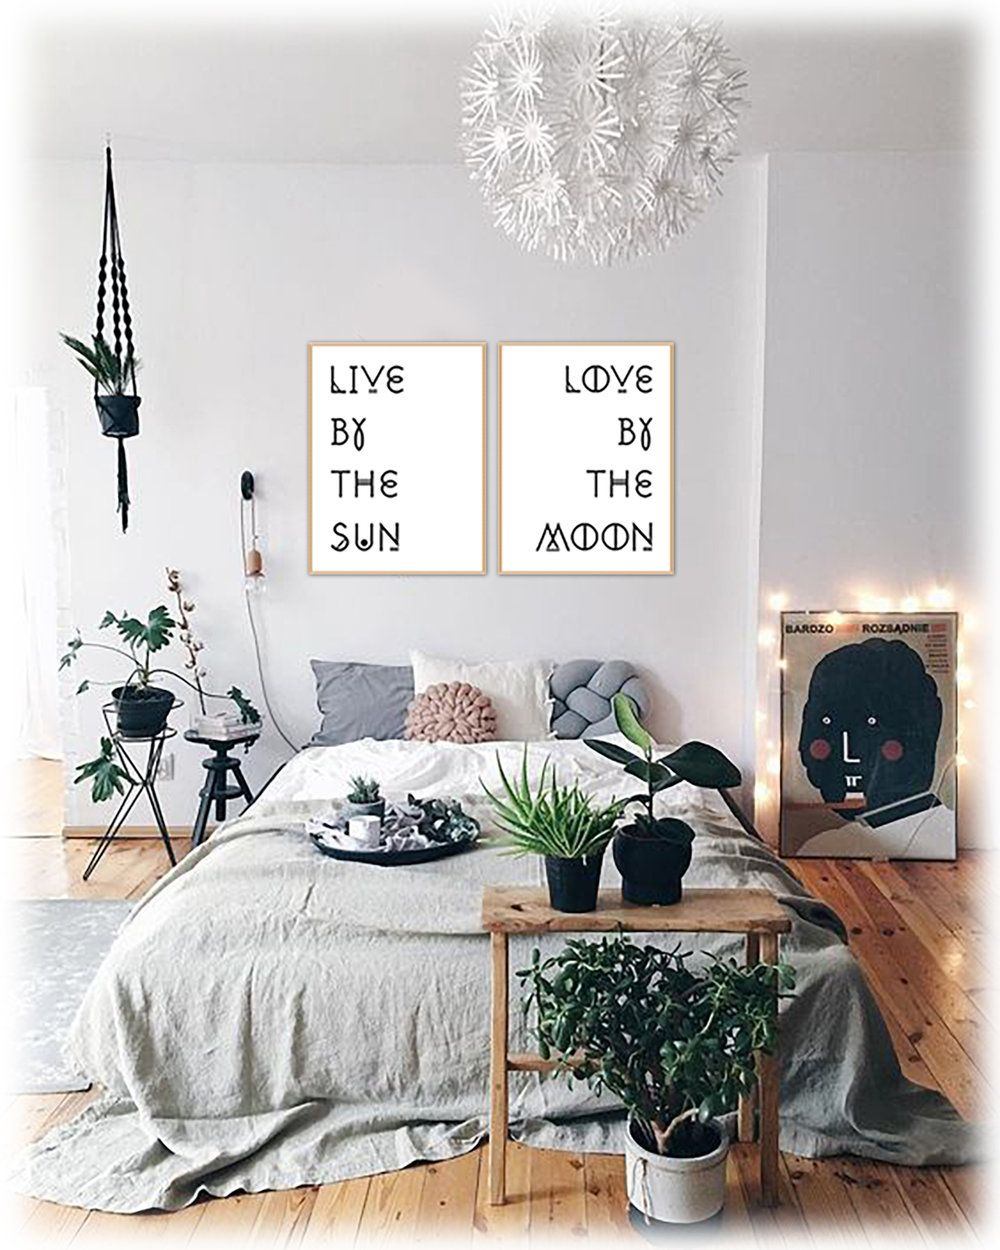 LIVE BY THE SUN INSPIRATIONAL WORD ART BY MODERN ENGLISH. This artwork will hang beautifully alone or paired with it's sister print - LOVE BY THE MOON. FREE GROUND SHIPPING IN THE USA - FOR EXPEDITED SHIPPING CONTACT US FOR A QUOTE ATINFO@ELEPHANTSQUARE.COM